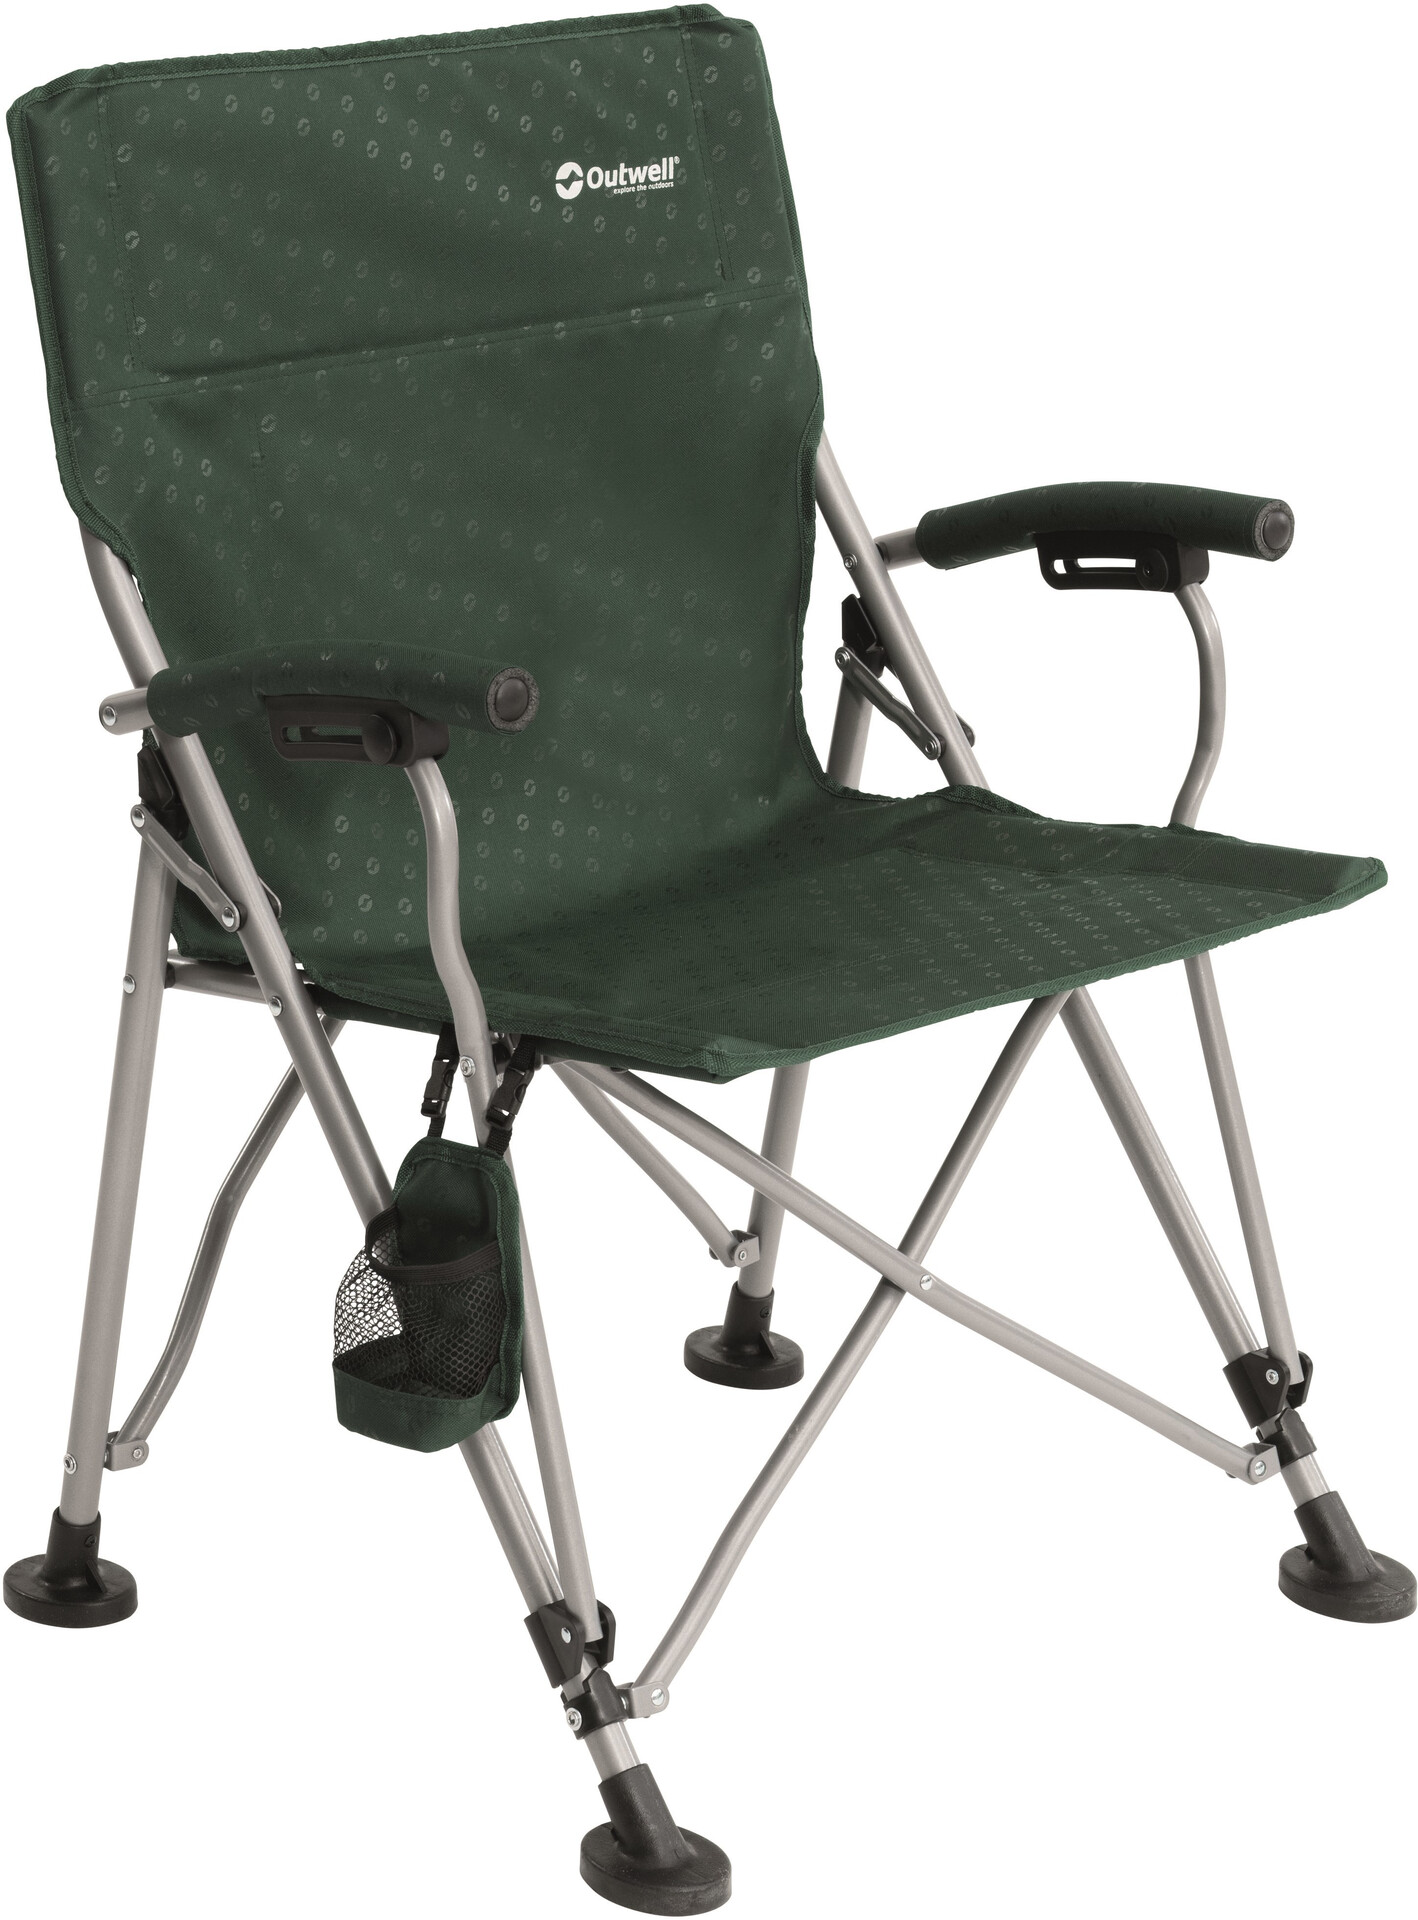 Outwell Campo Chaise, forest green